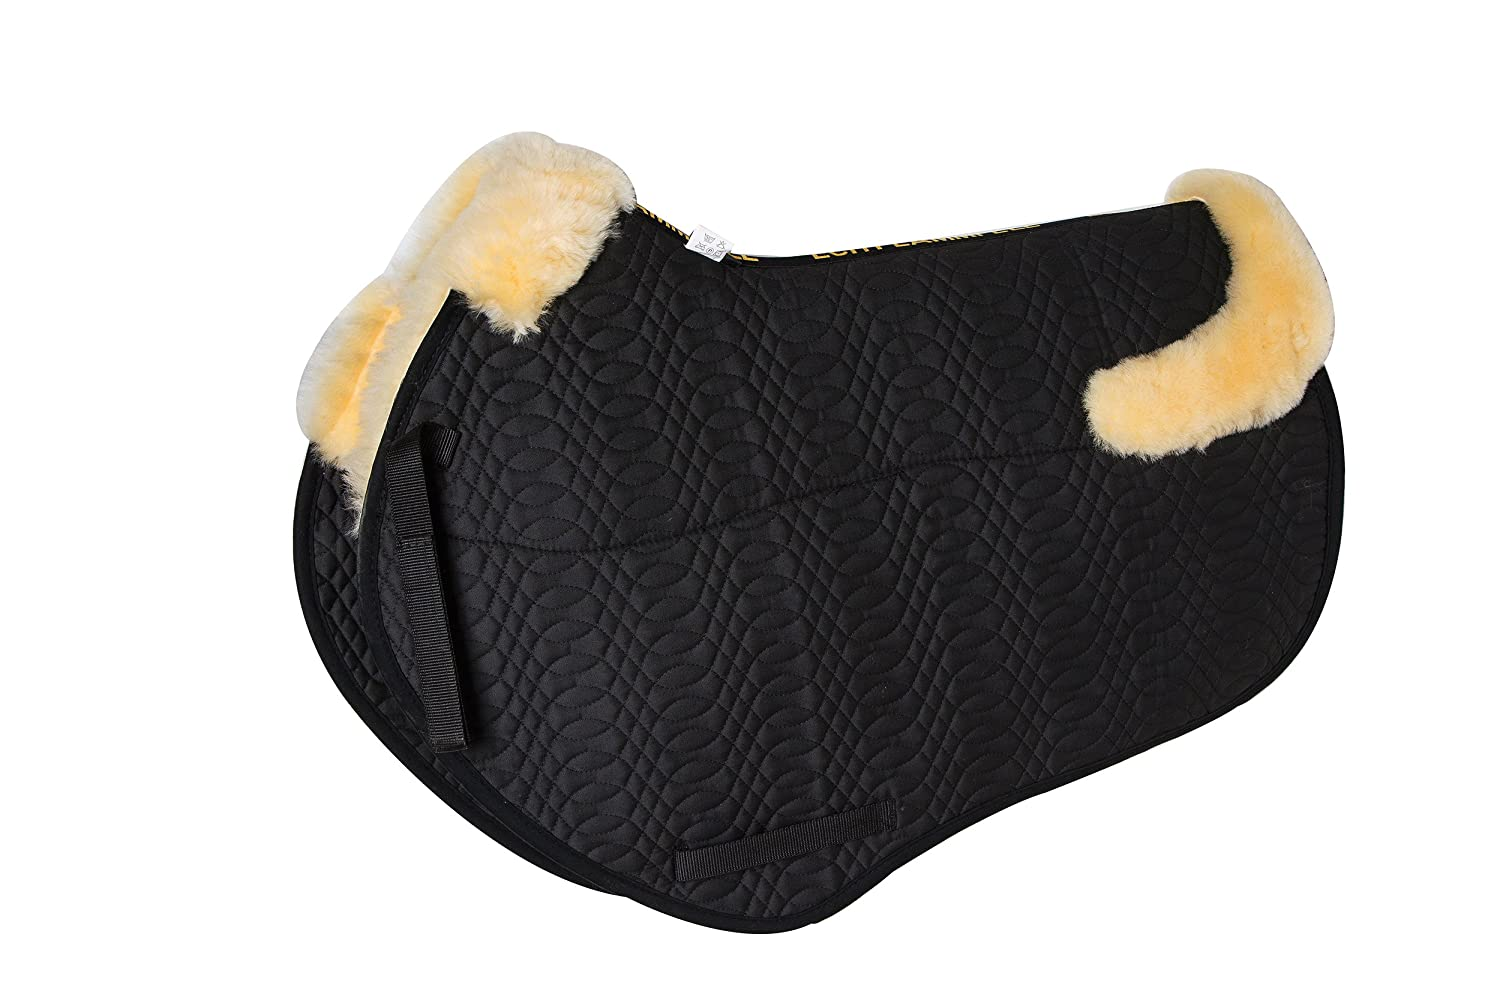 (Dressage, Natural wool Black quilting) Merauno Sheepskin GP Saddle Pad Full Blanket